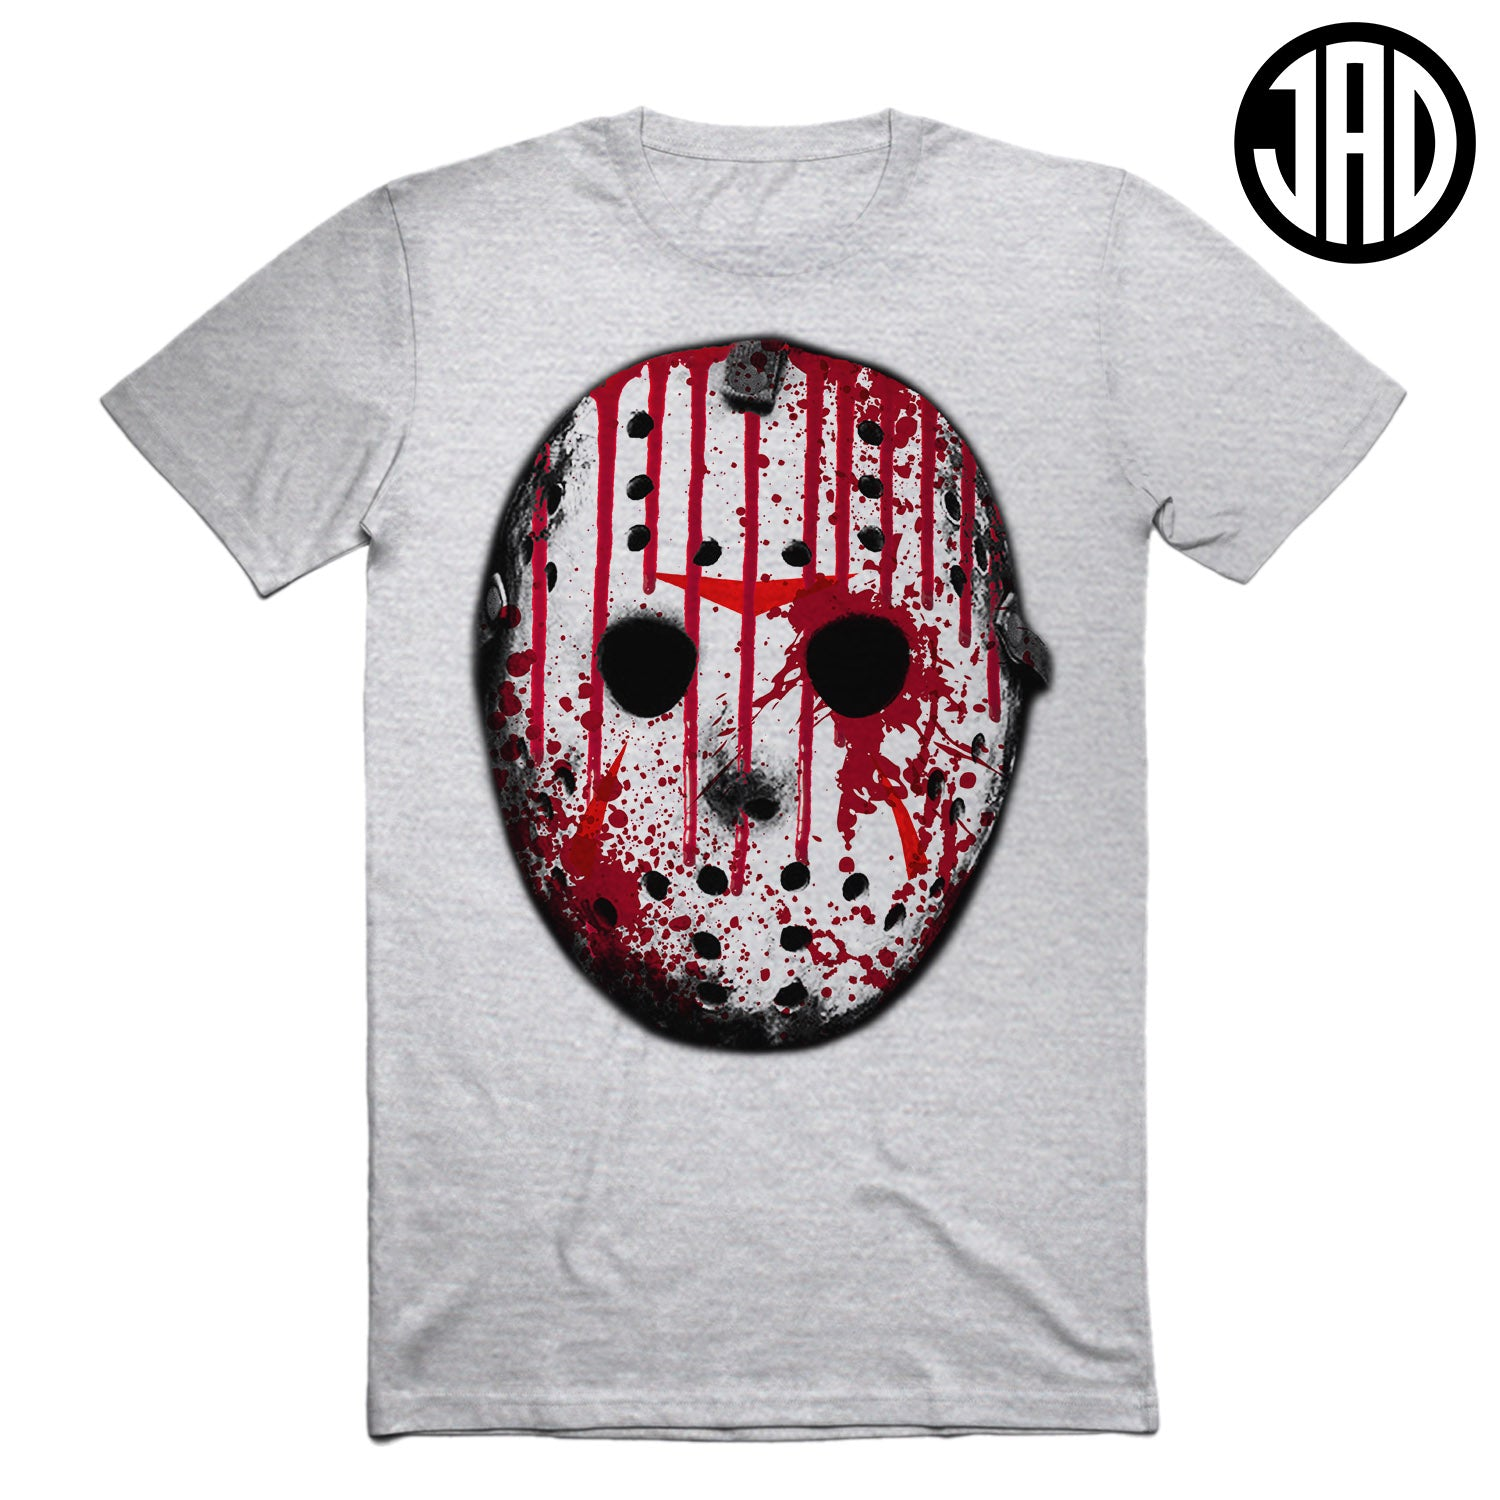 Blood Mask - Men's (Unisex) Tee